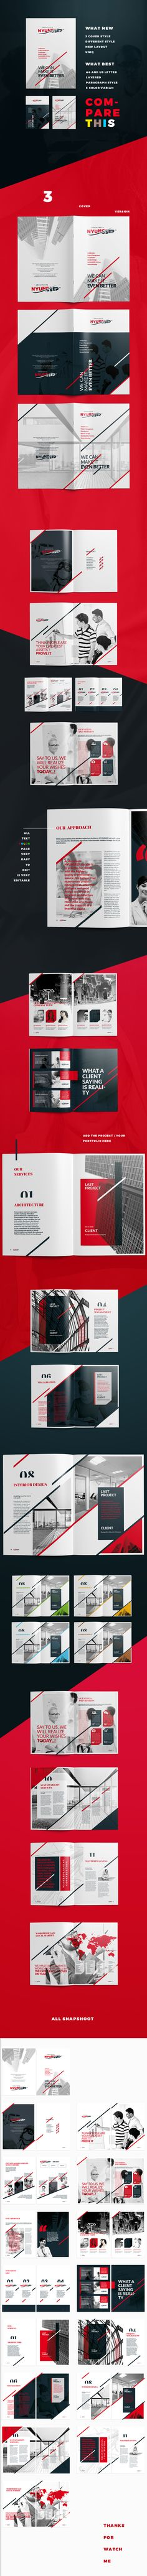 """Check out this @Behance project: """"Architecture Brochure"""" https://www.behance.net/gallery/34923047/Architecture-Brochure"""